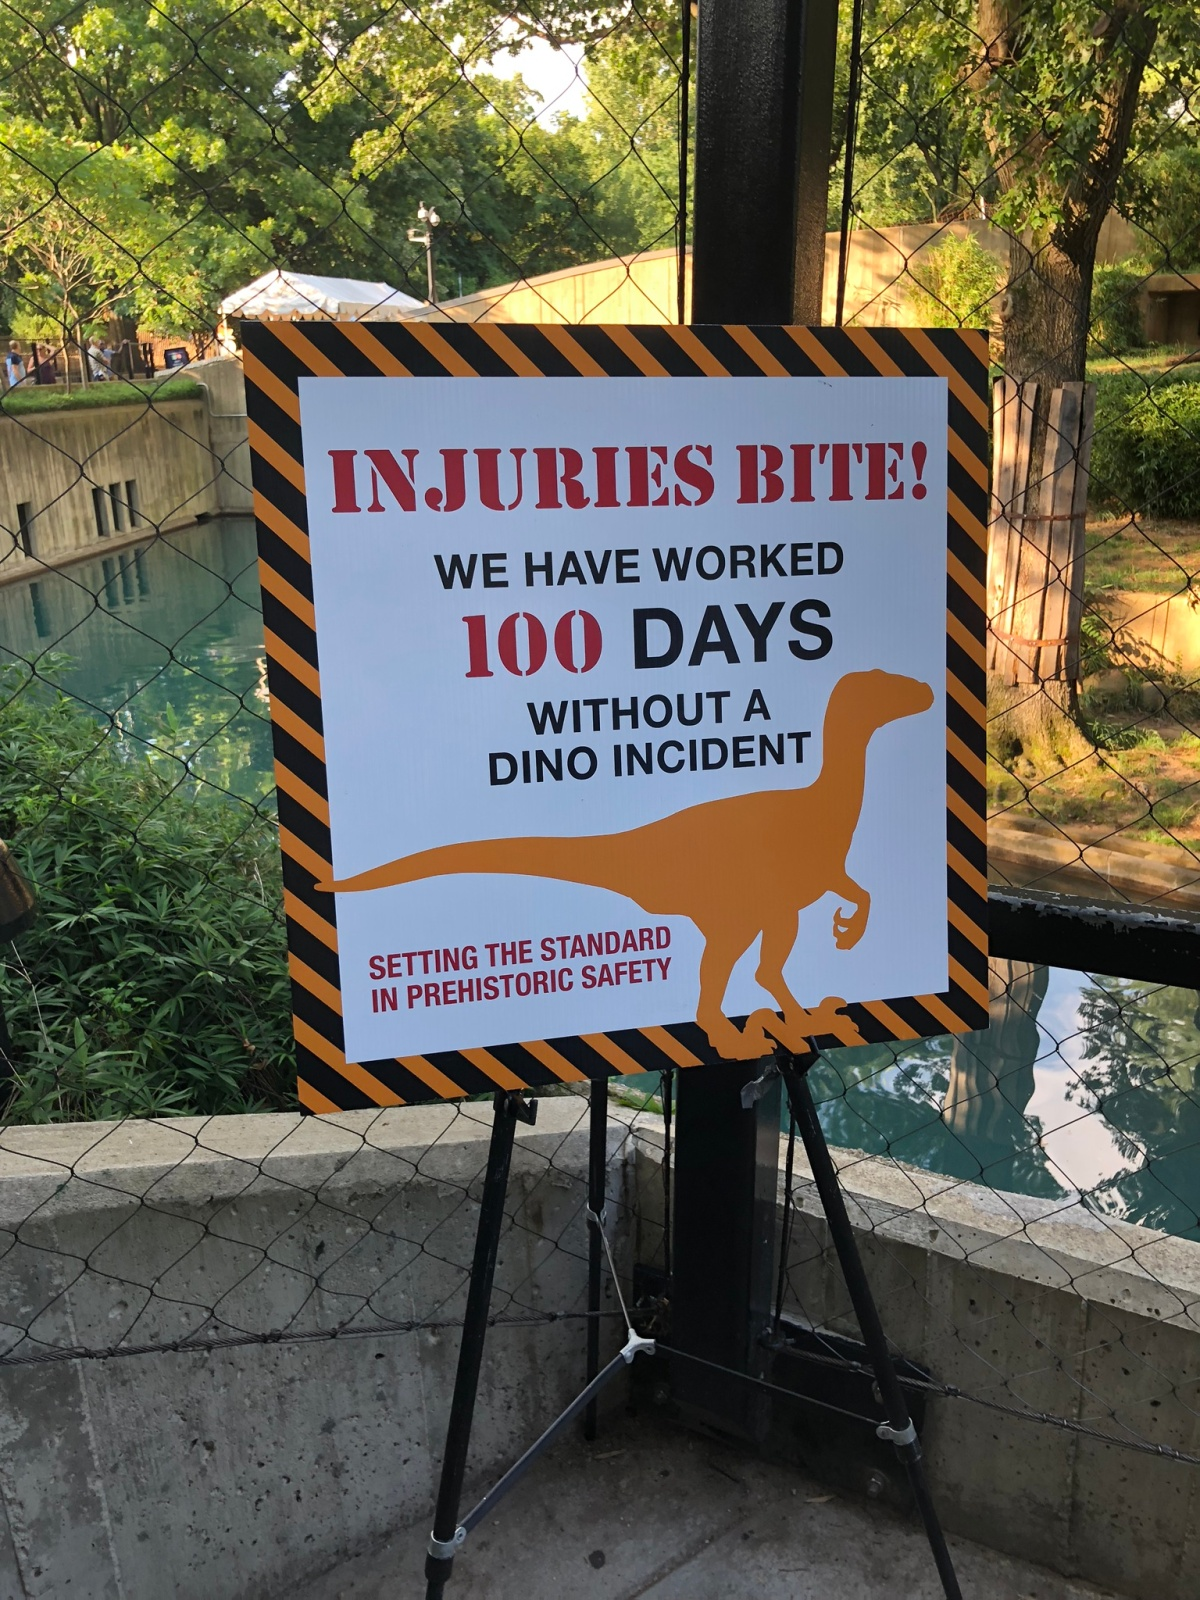 No Dino Incidents